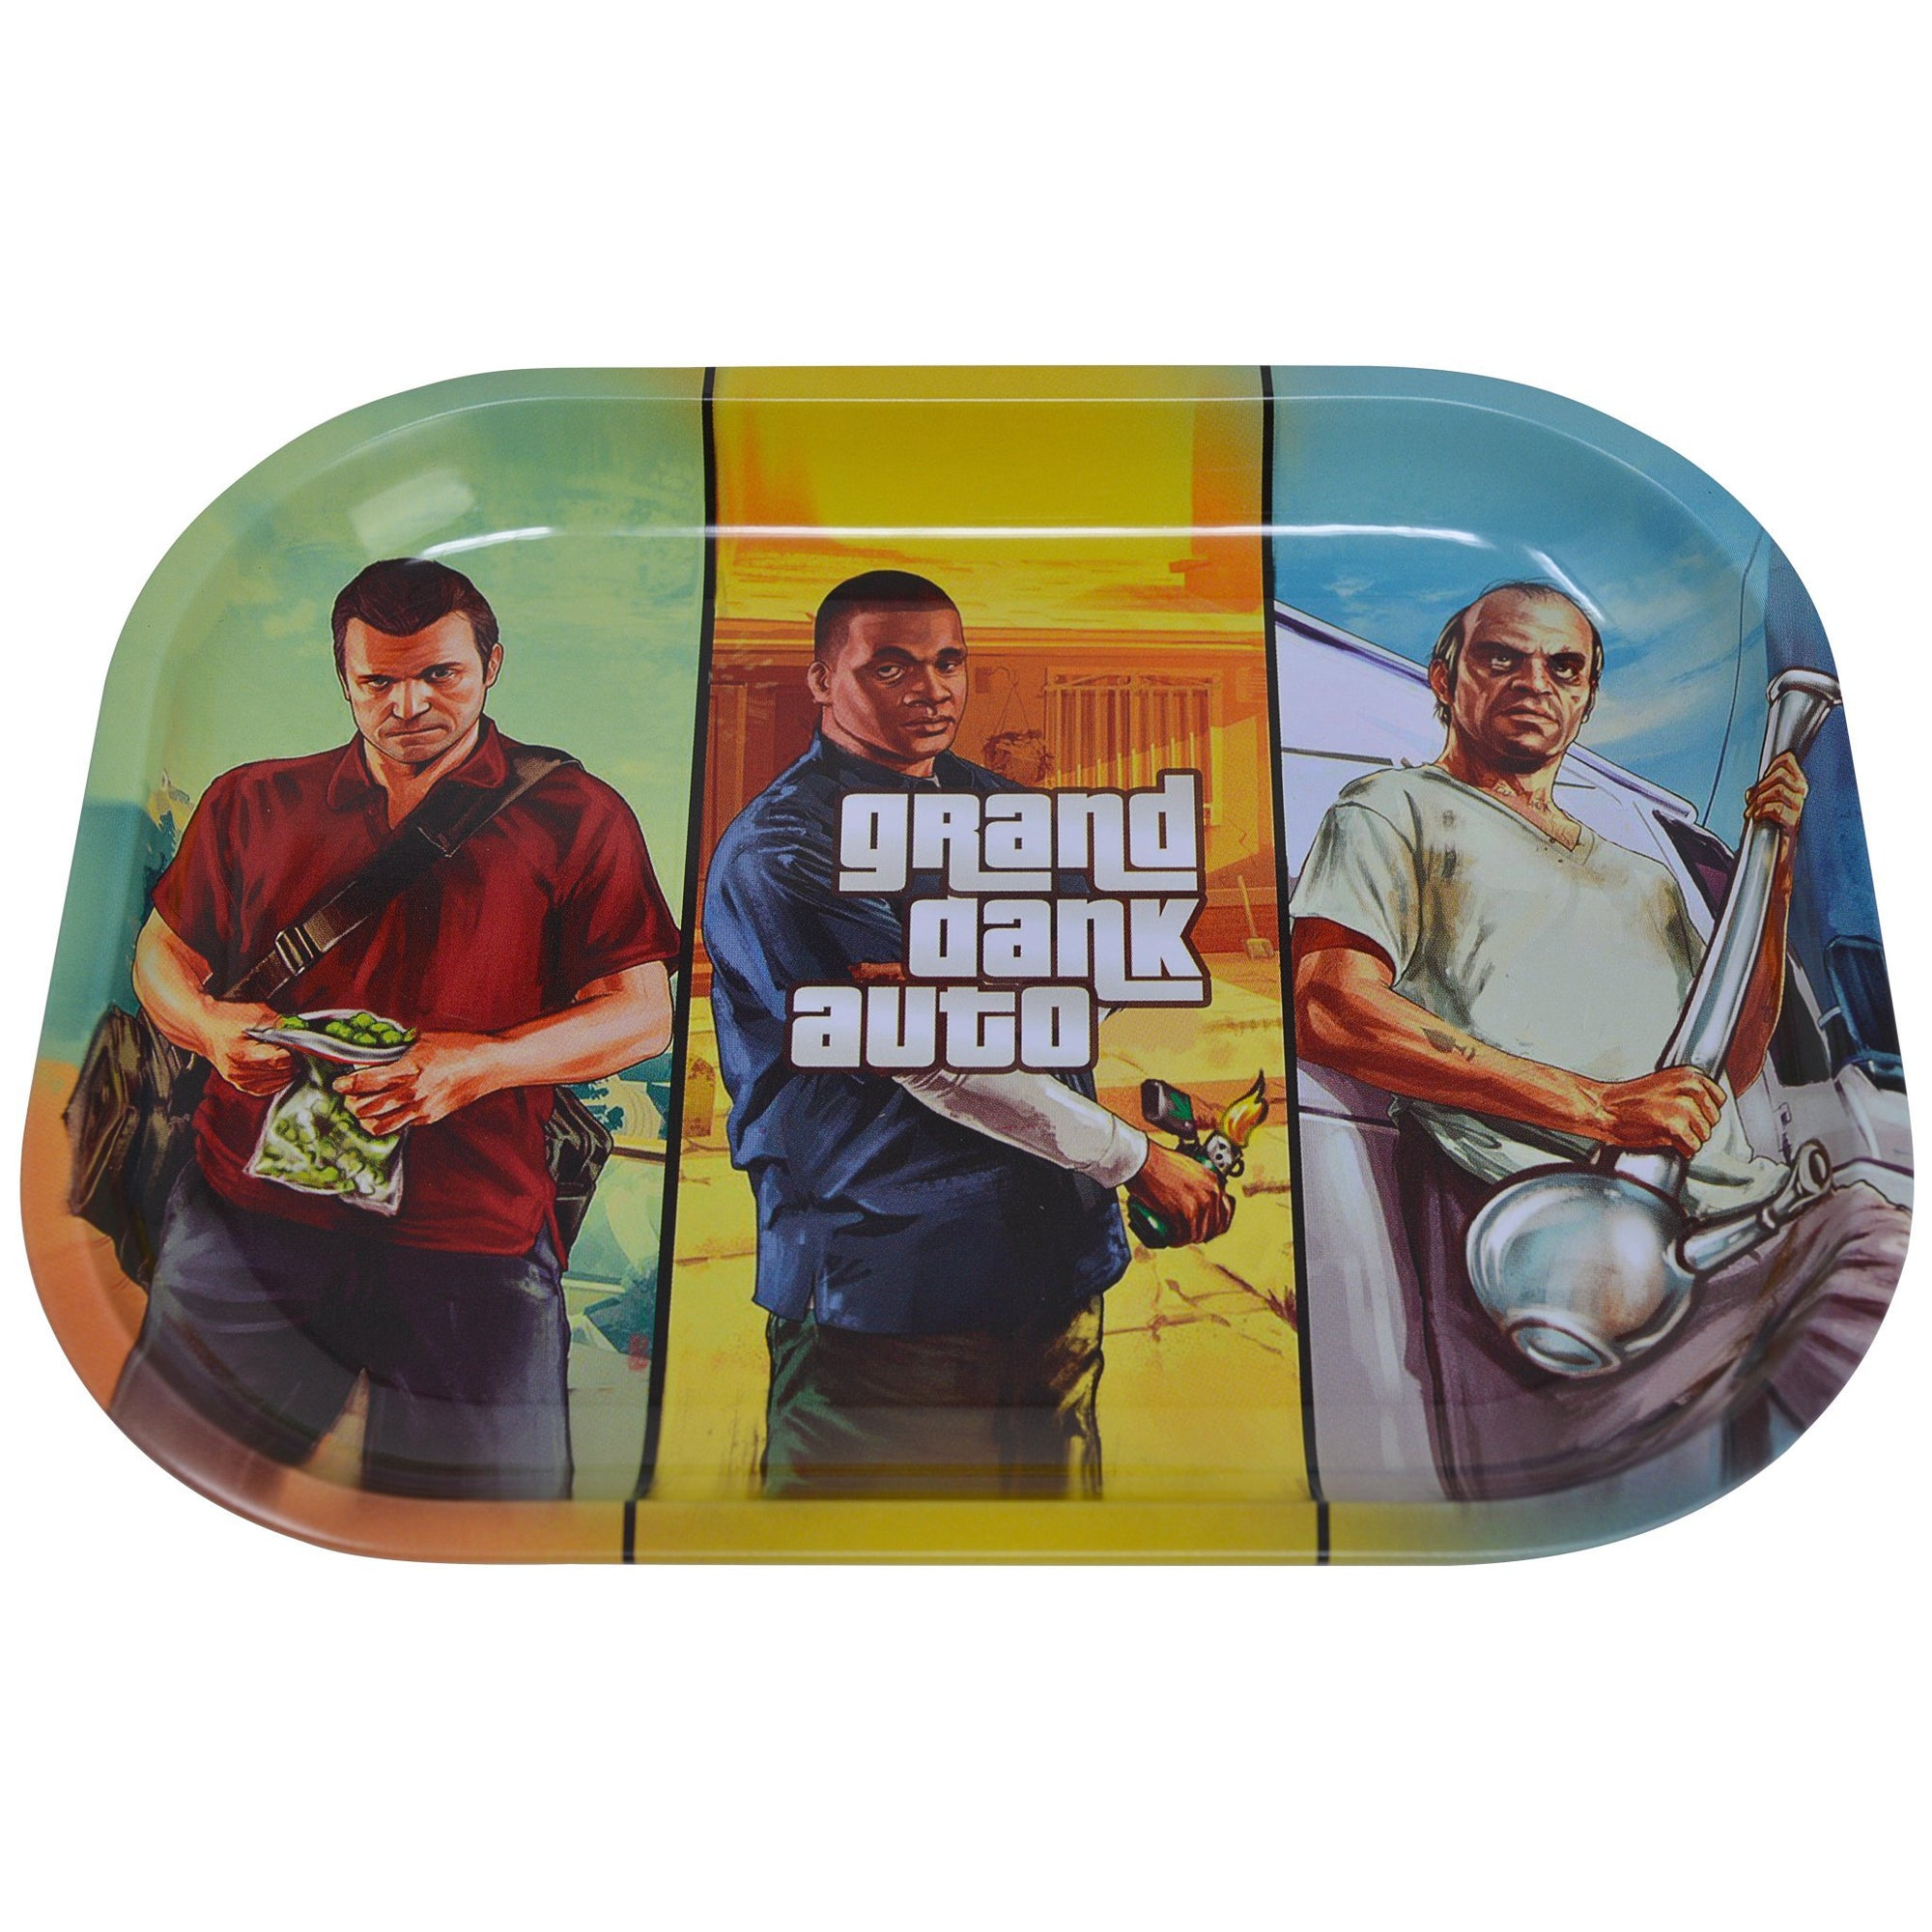 Handy rolling tray smoking accessory Grand Theft Auto video game themed with Carl, Mike, Trevor smoking weed